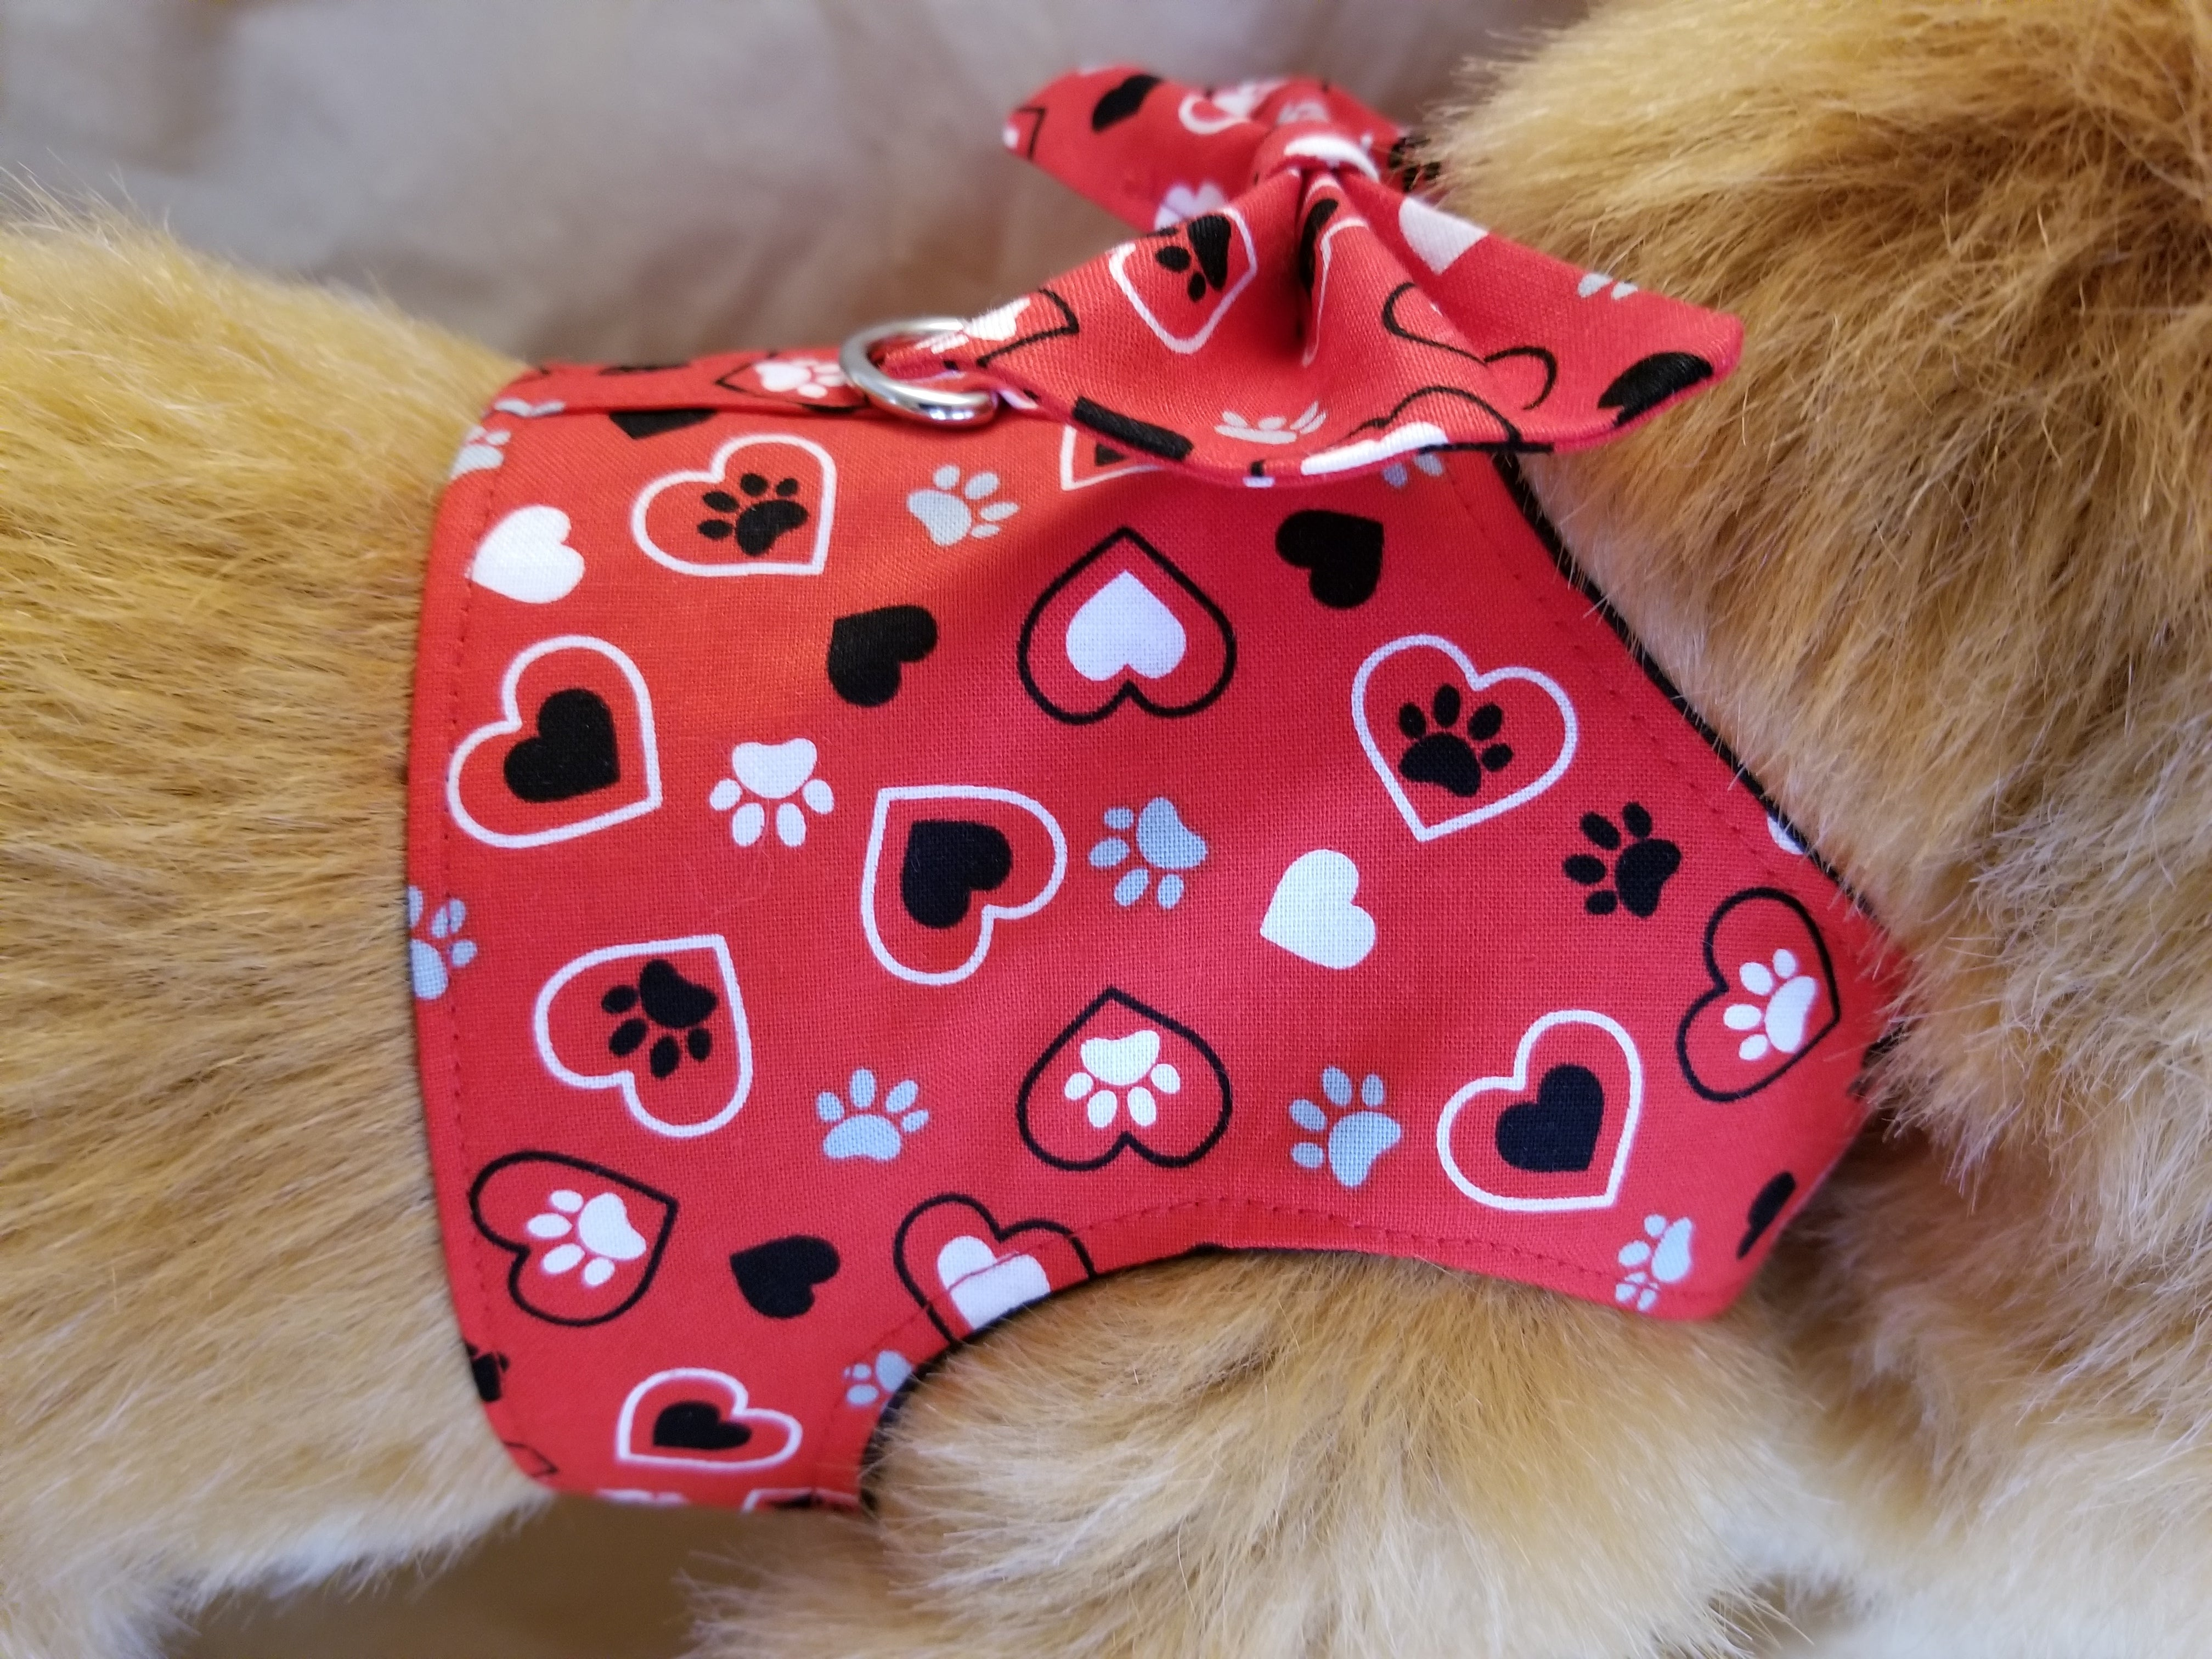 20180211_123039?v=1518703969 red heart dog harness with bow tie the purple pomeranian